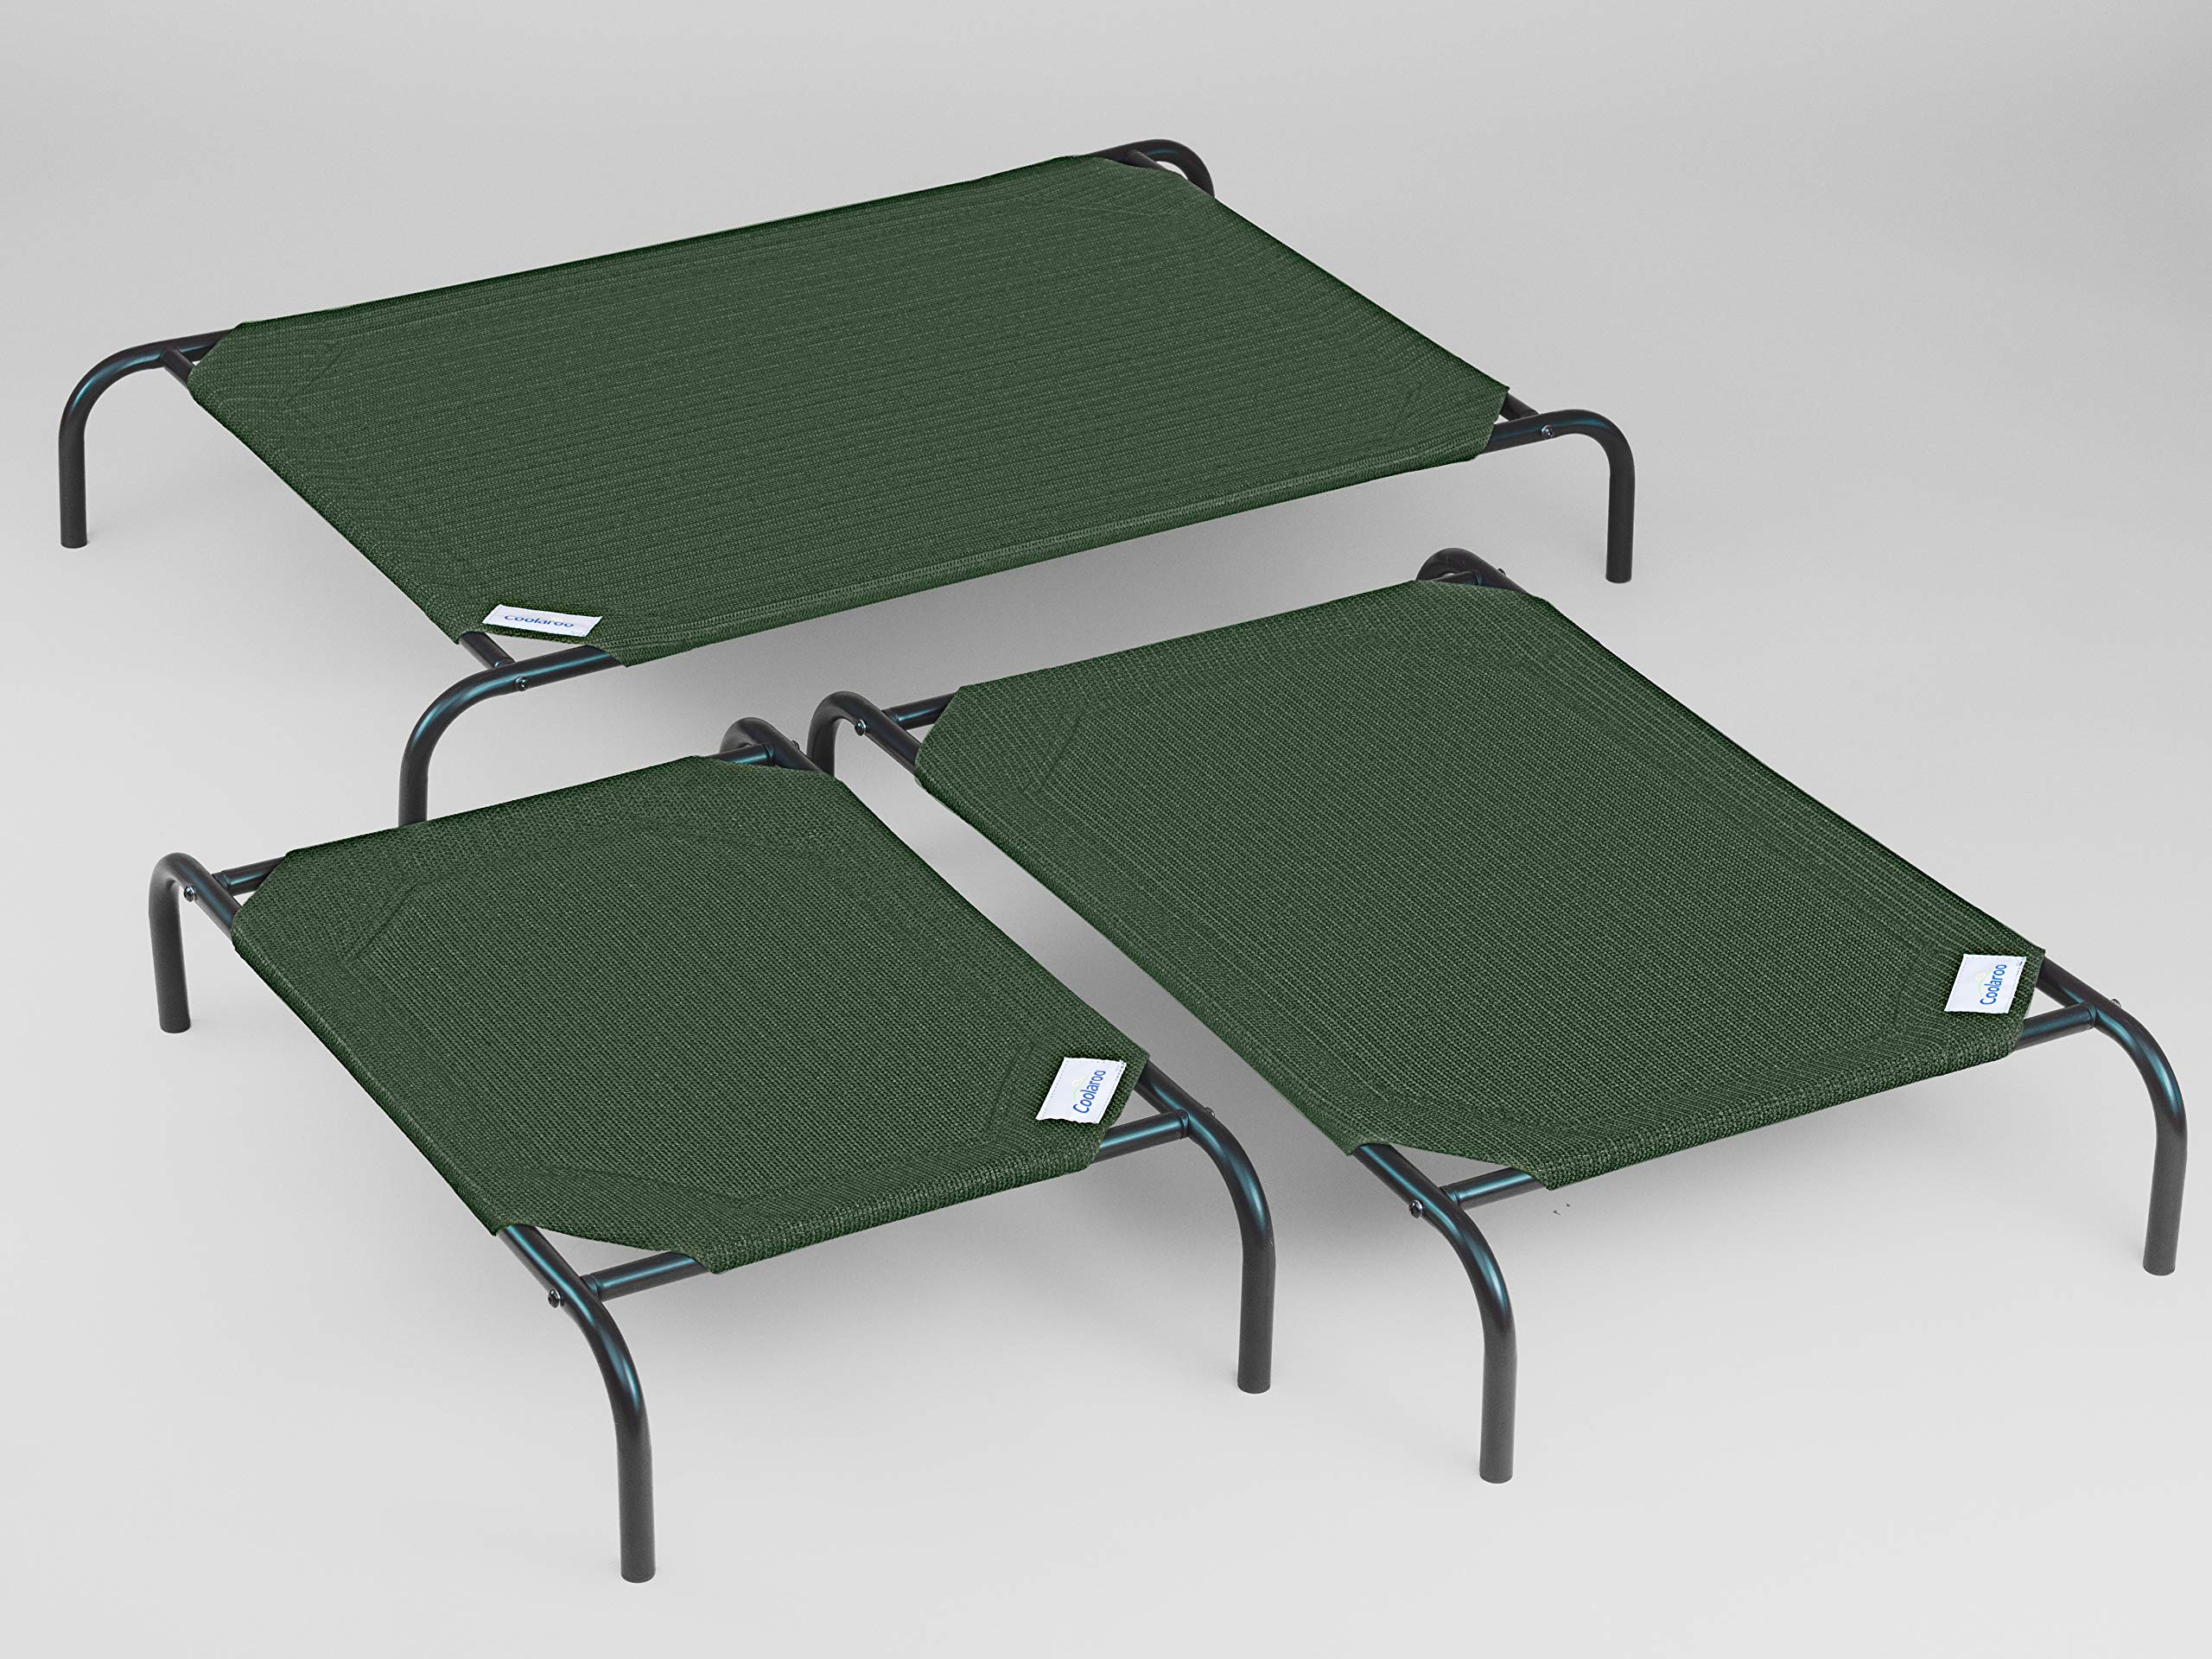 Coolaroo Replacement Cover, The Original Elevated Pet Bed by Coolaroo, Large, Brunswick Green by Coolaroo